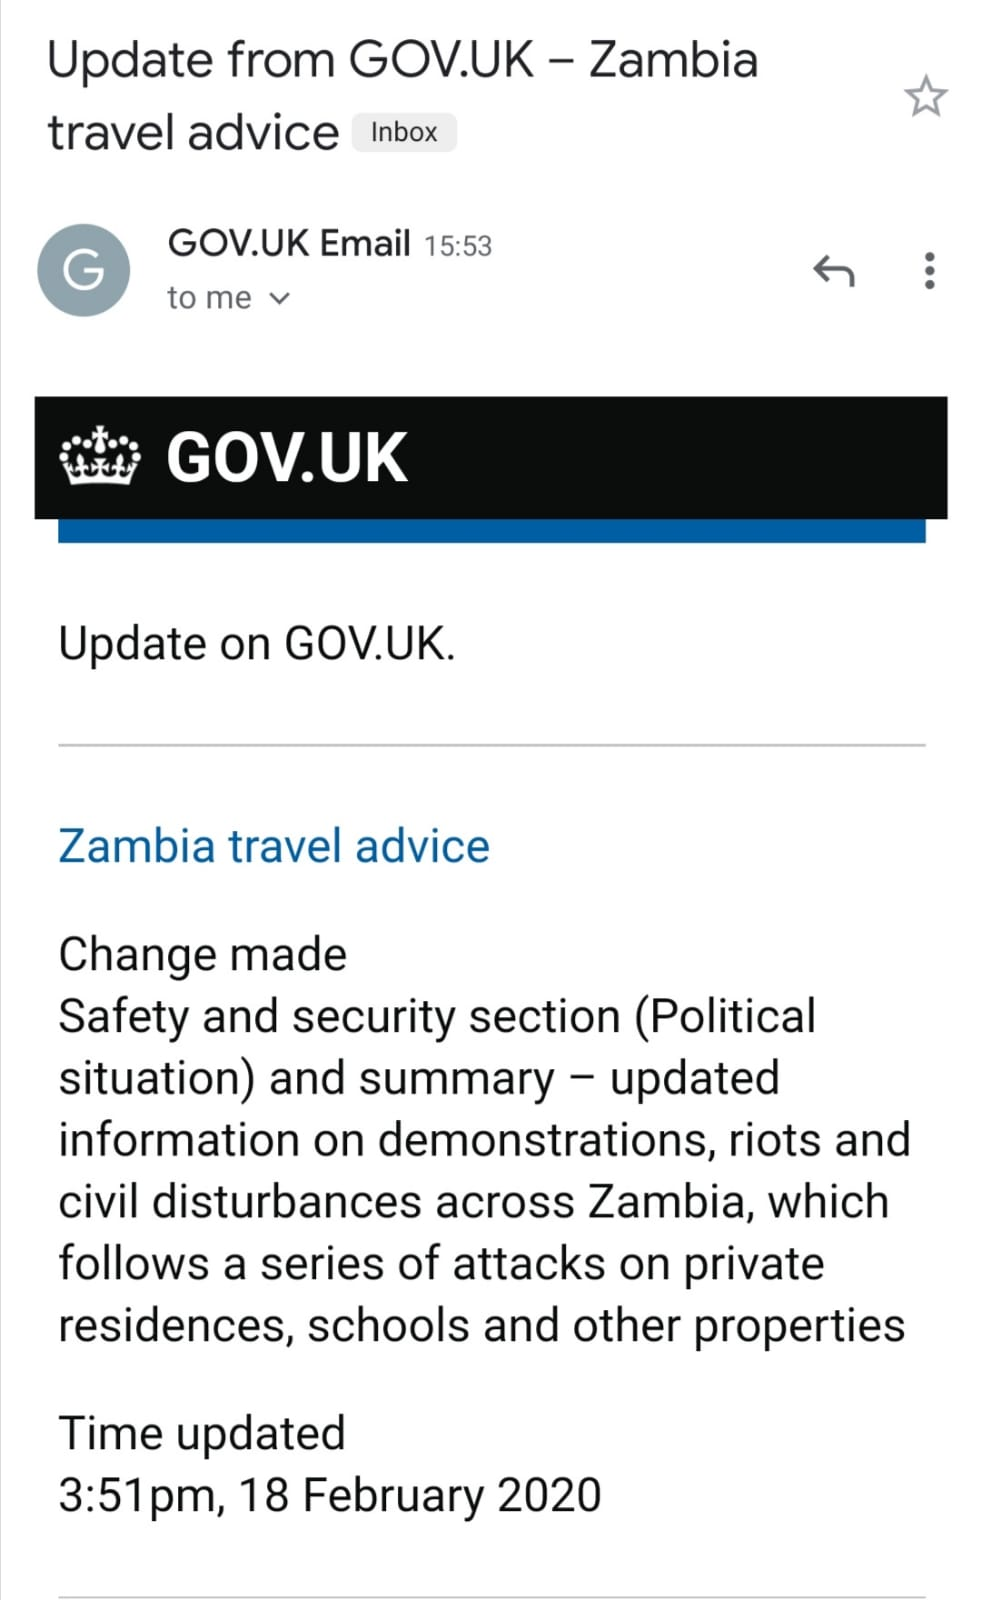 UK issues warning on security situation in Zambia